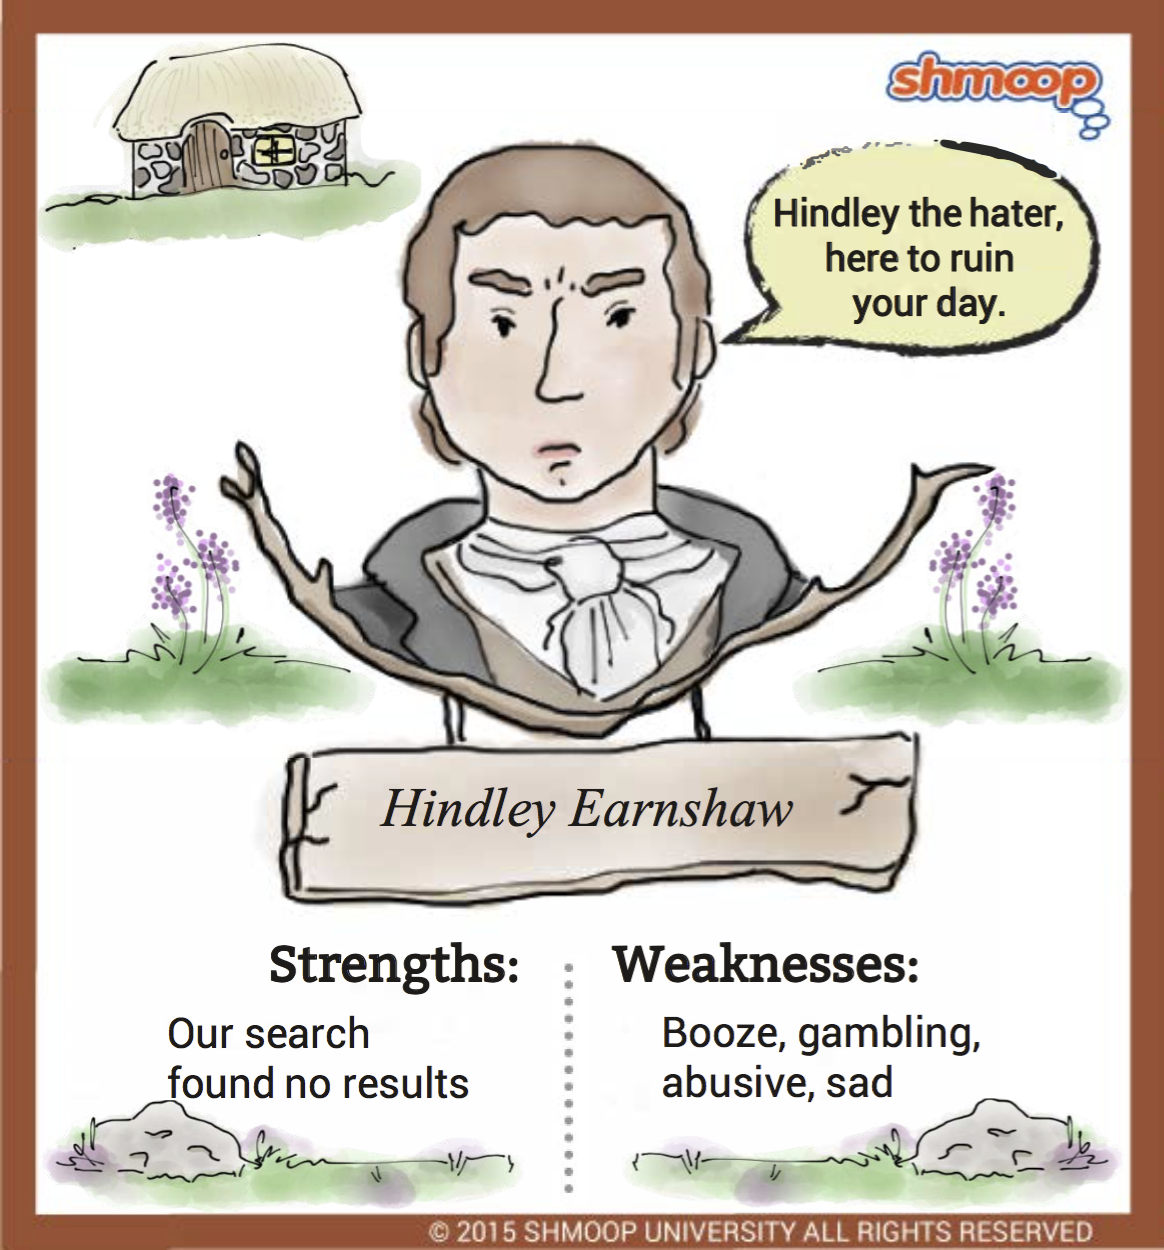 an analysis of heathcliff a character in the novel wuthering heights by emily bronte We will write a custom essay sample on wuthering heights by emily brontë analysis  novel wuthering heights,  characters heathcliff wuthering heights .